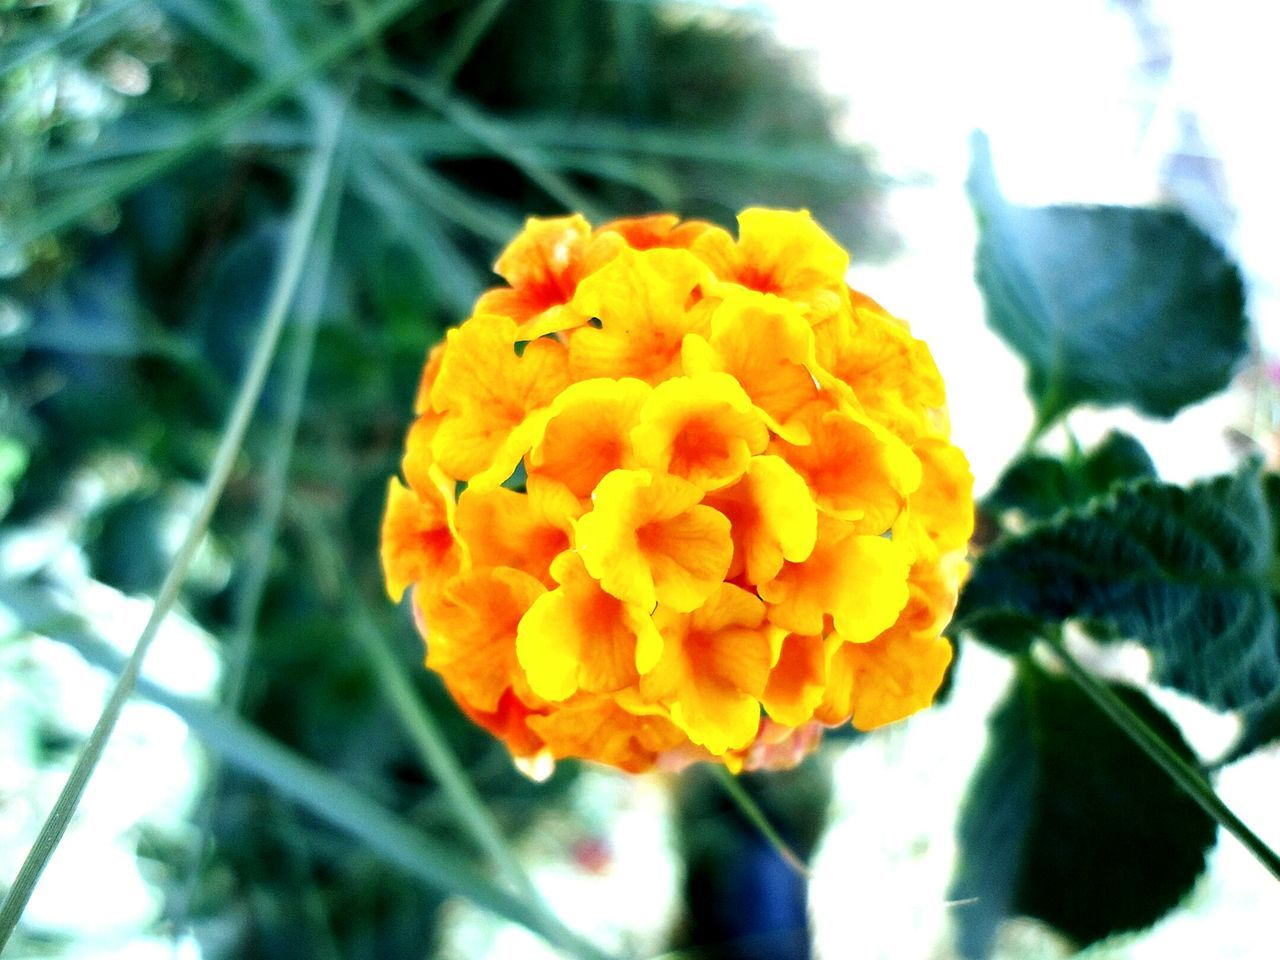 flower, beauty in nature, nature, fragility, petal, freshness, growth, yellow, close-up, flower head, plant, day, focus on foreground, outdoors, no people, blooming